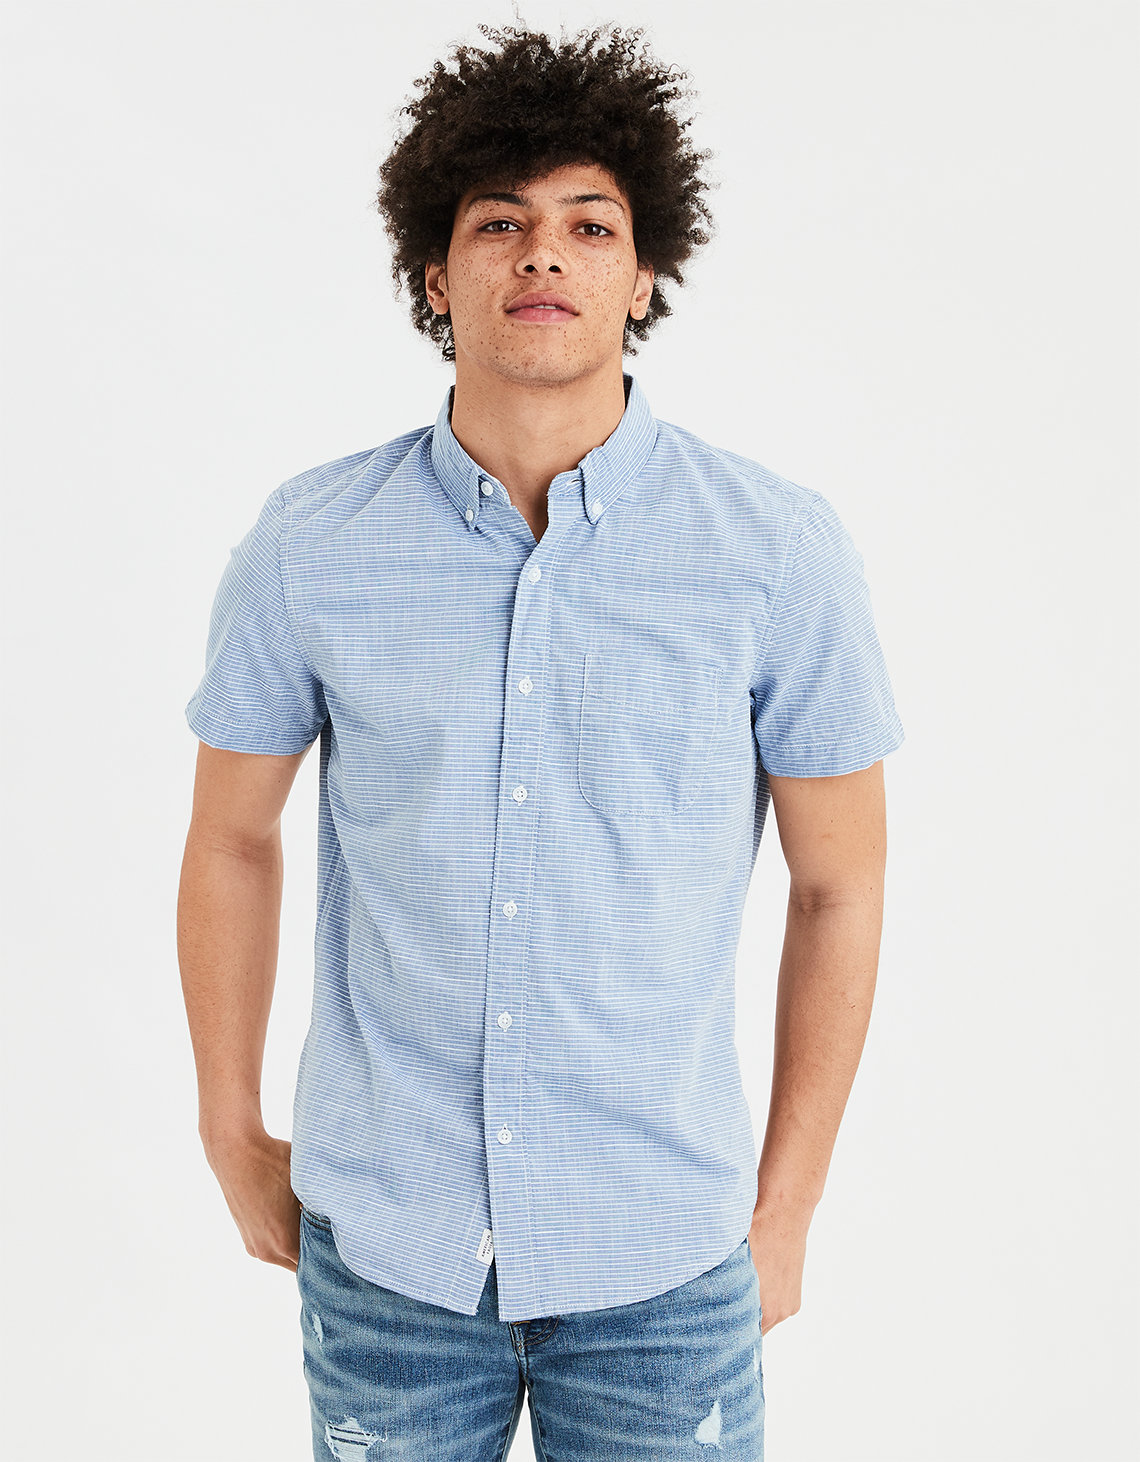 82f0193c AE Short Sleeve Striped Button Down Shirt. Placeholder image. Product Image